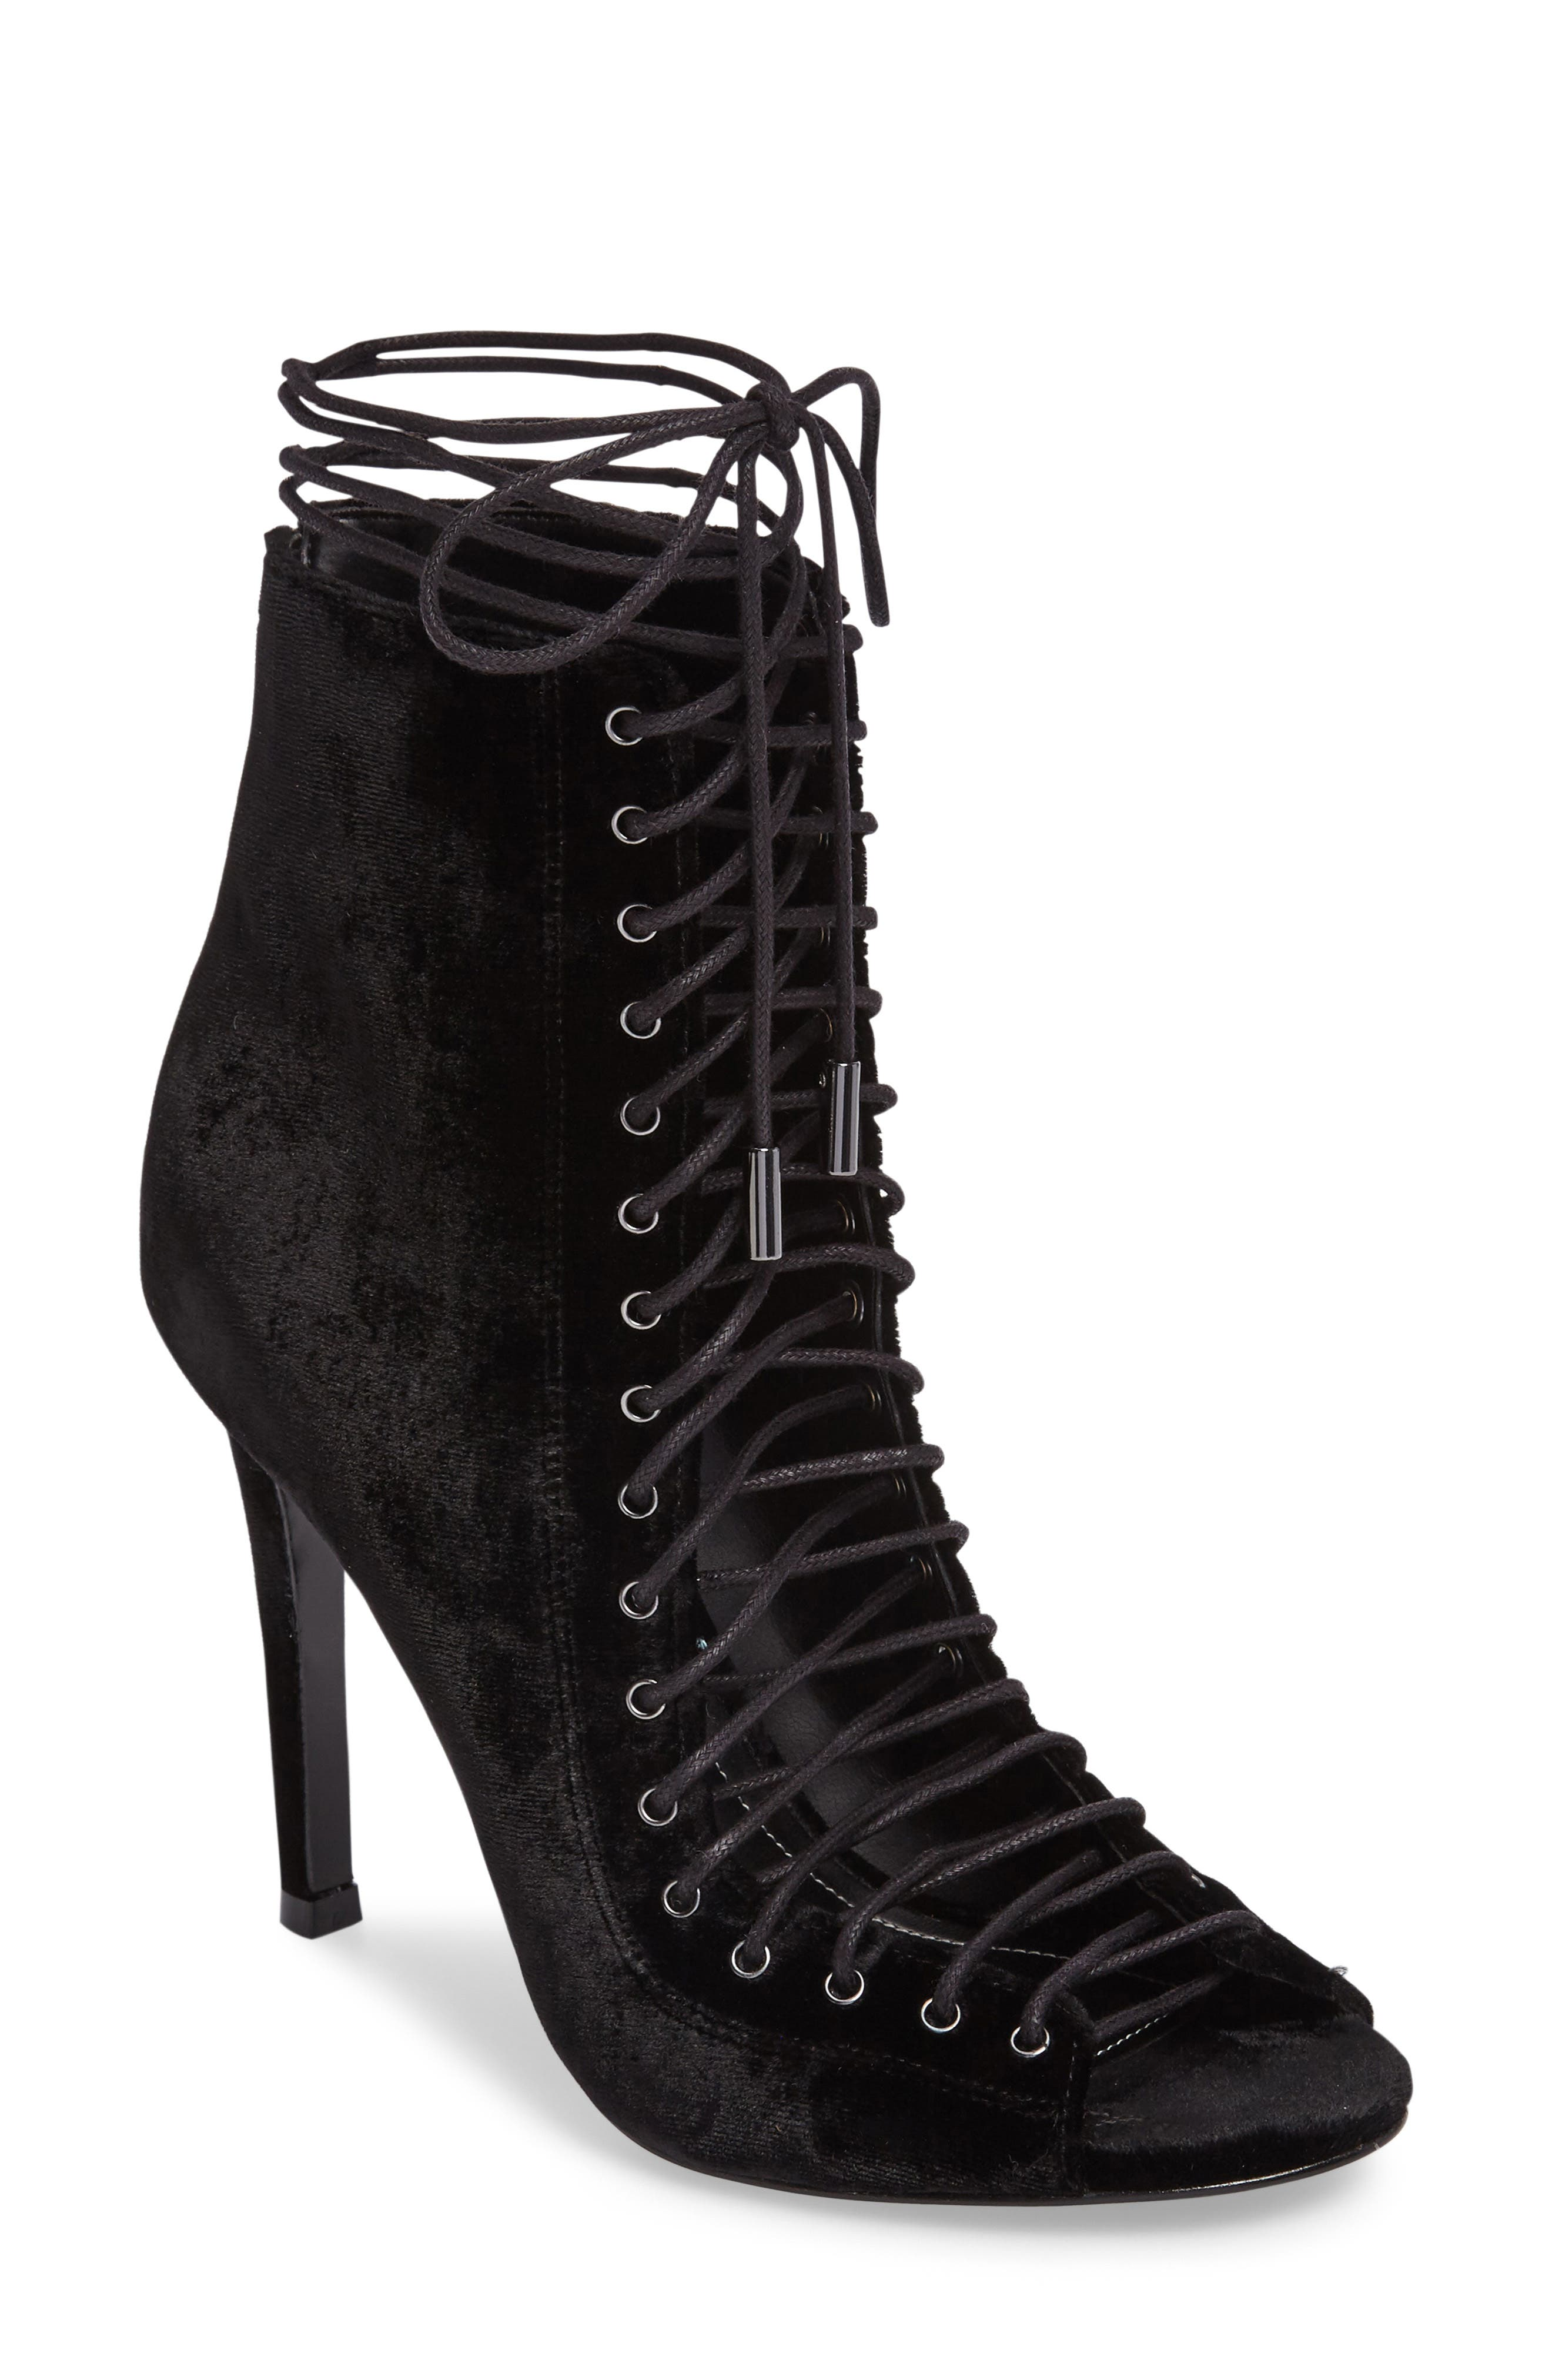 Alternate Image 1 Selected - KENDALL + KYLIE 'Ginny' Lace-Up Sandal (Women)